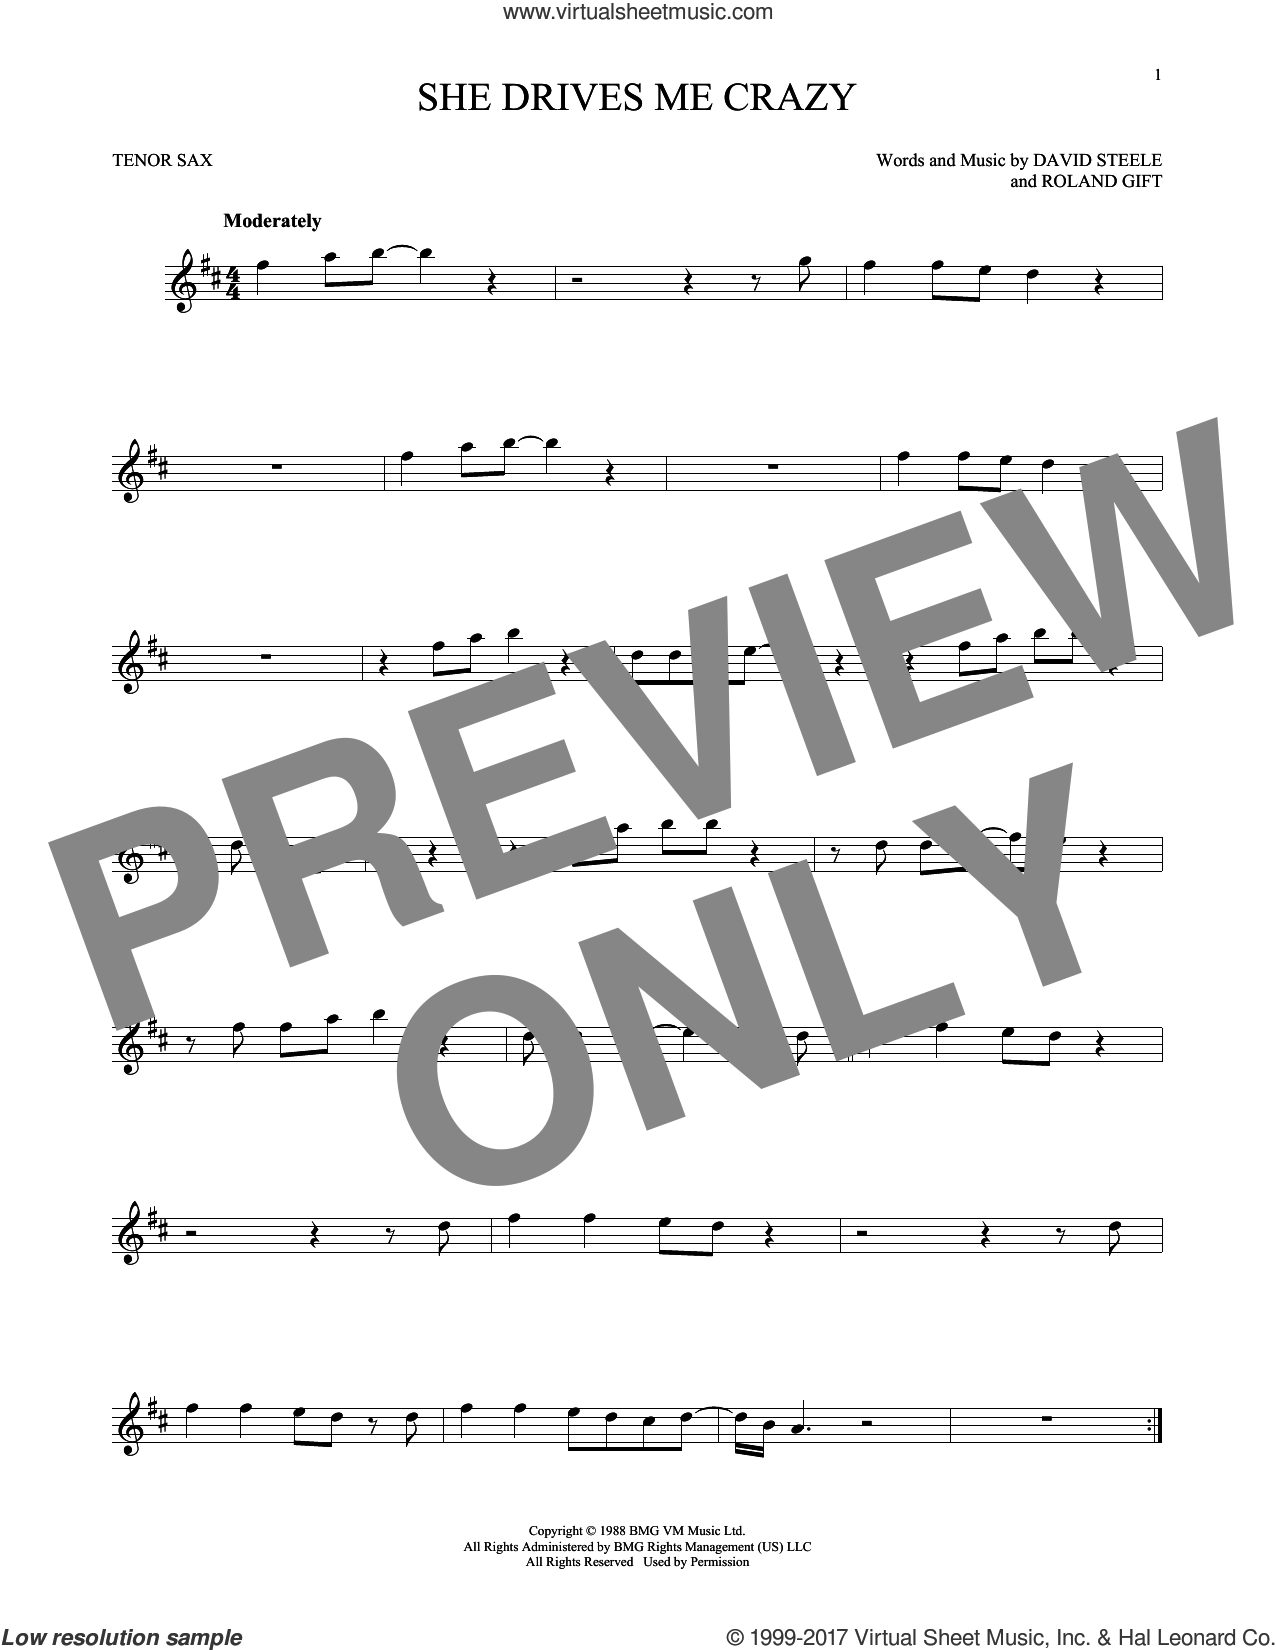 She Drives Me Crazy sheet music for tenor saxophone solo ( Sax) by Roland Gift. Score Image Preview.